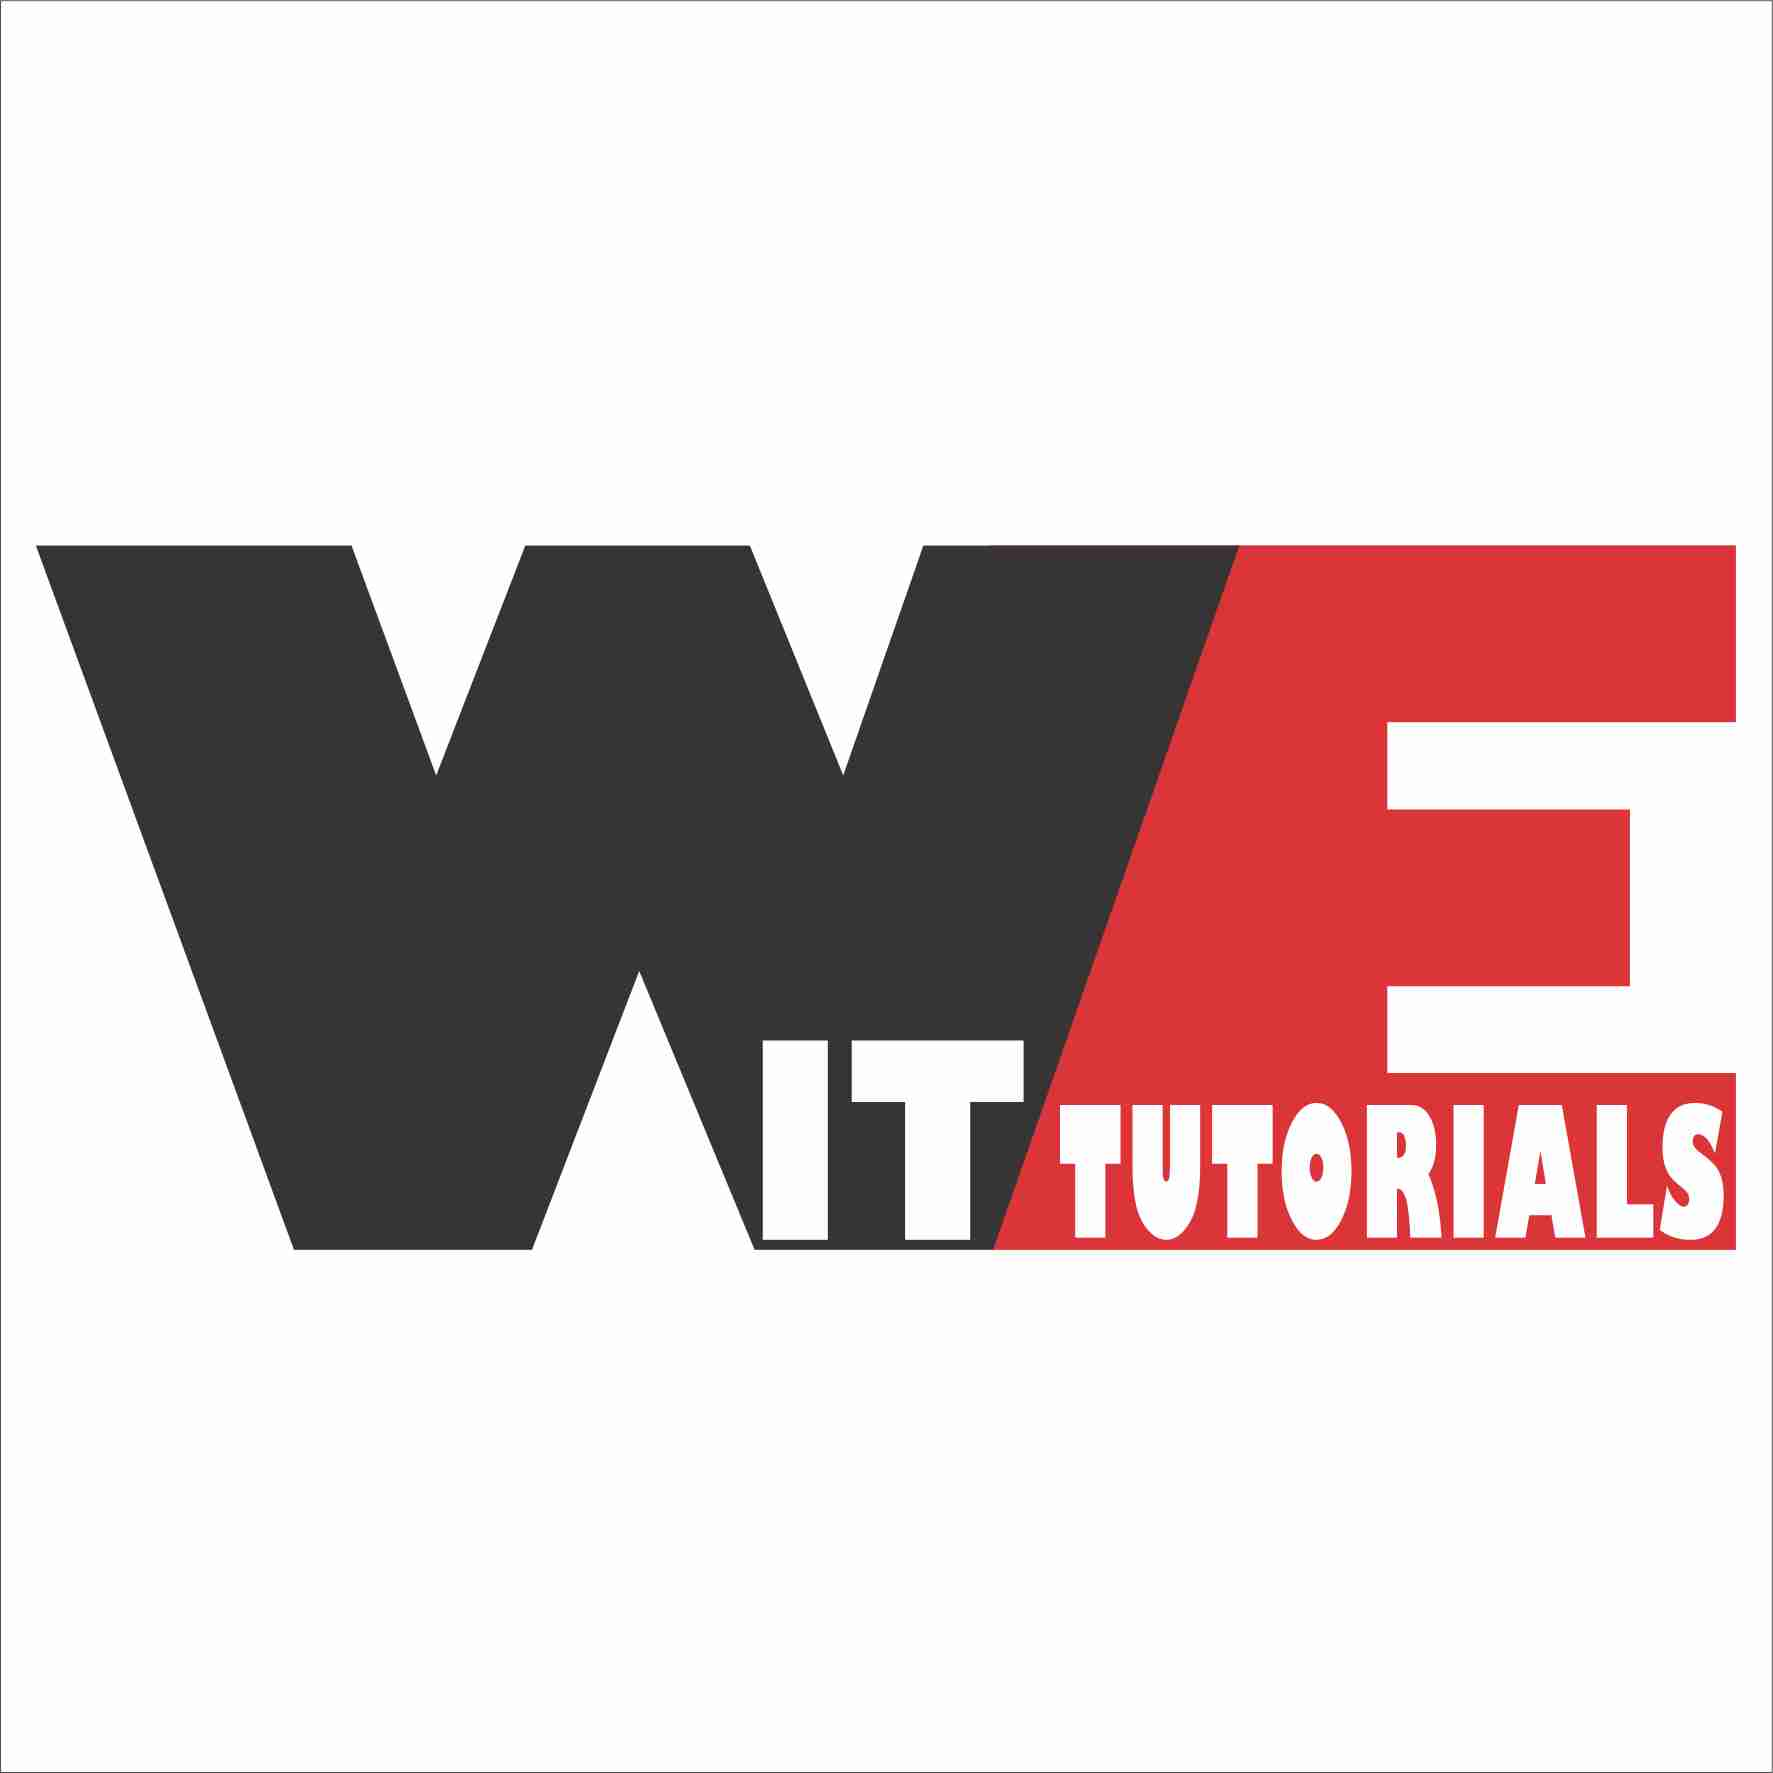 WE-IT TUTORIALS